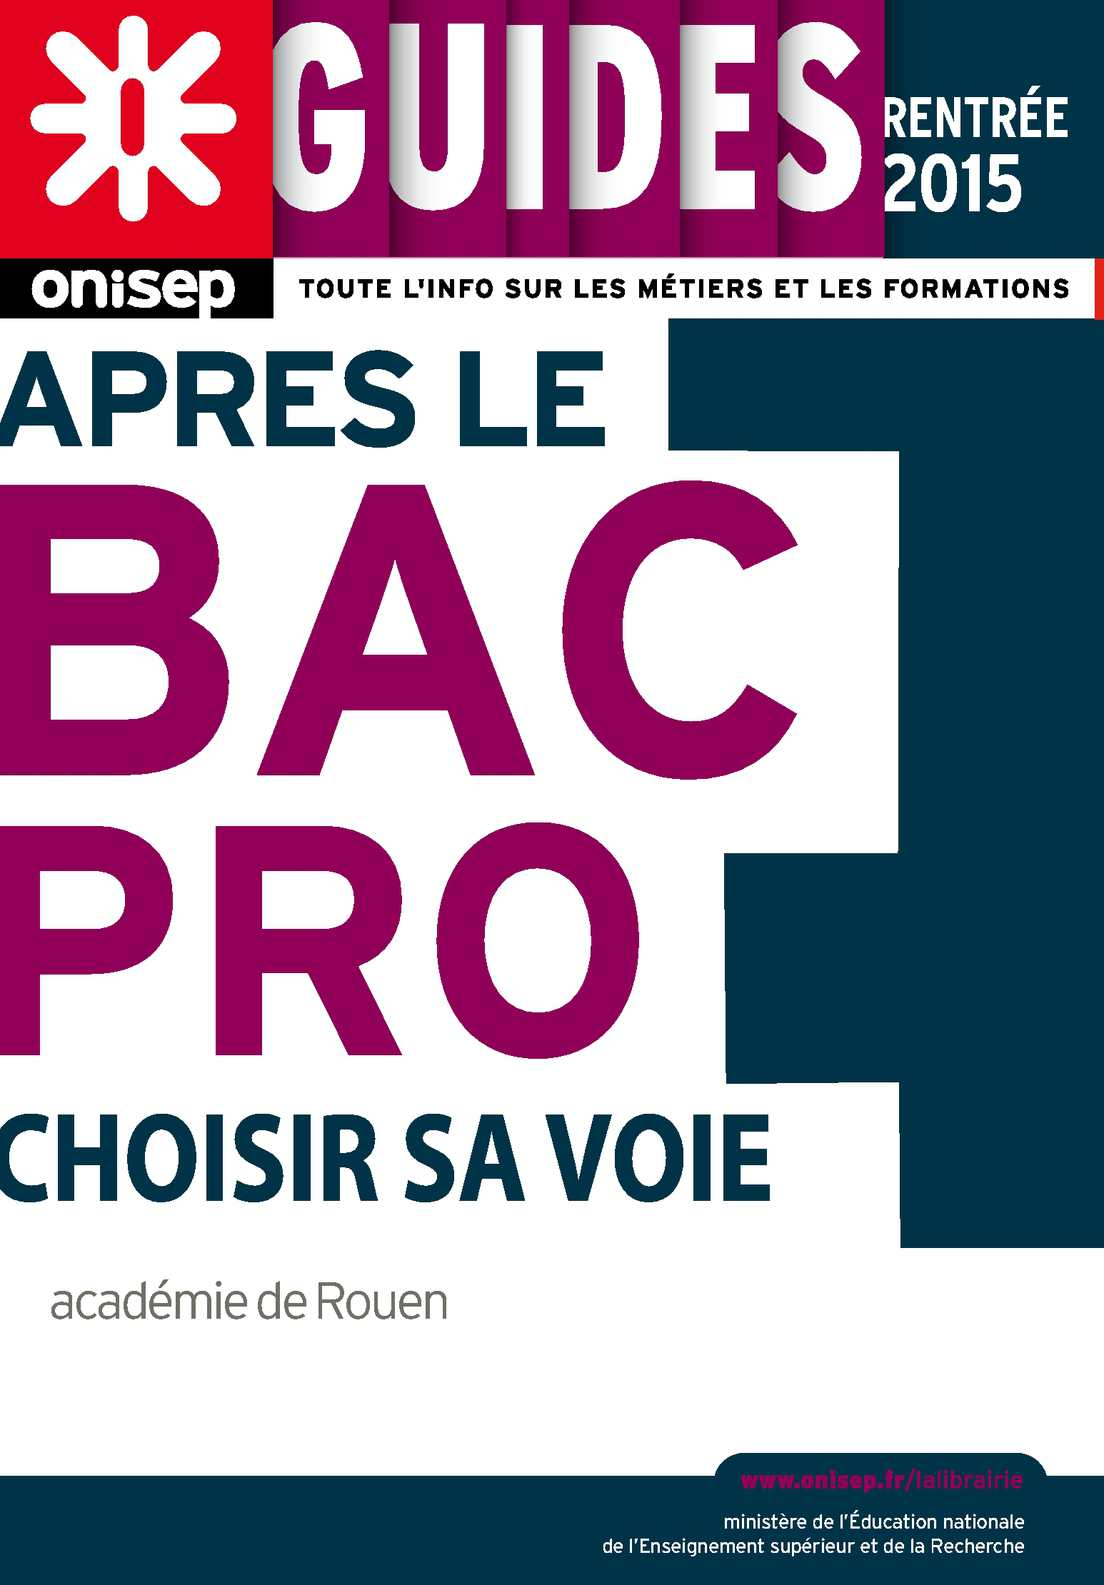 Calam o apr s le bac pro rentree 2015 onisep haute for Haute normandie active